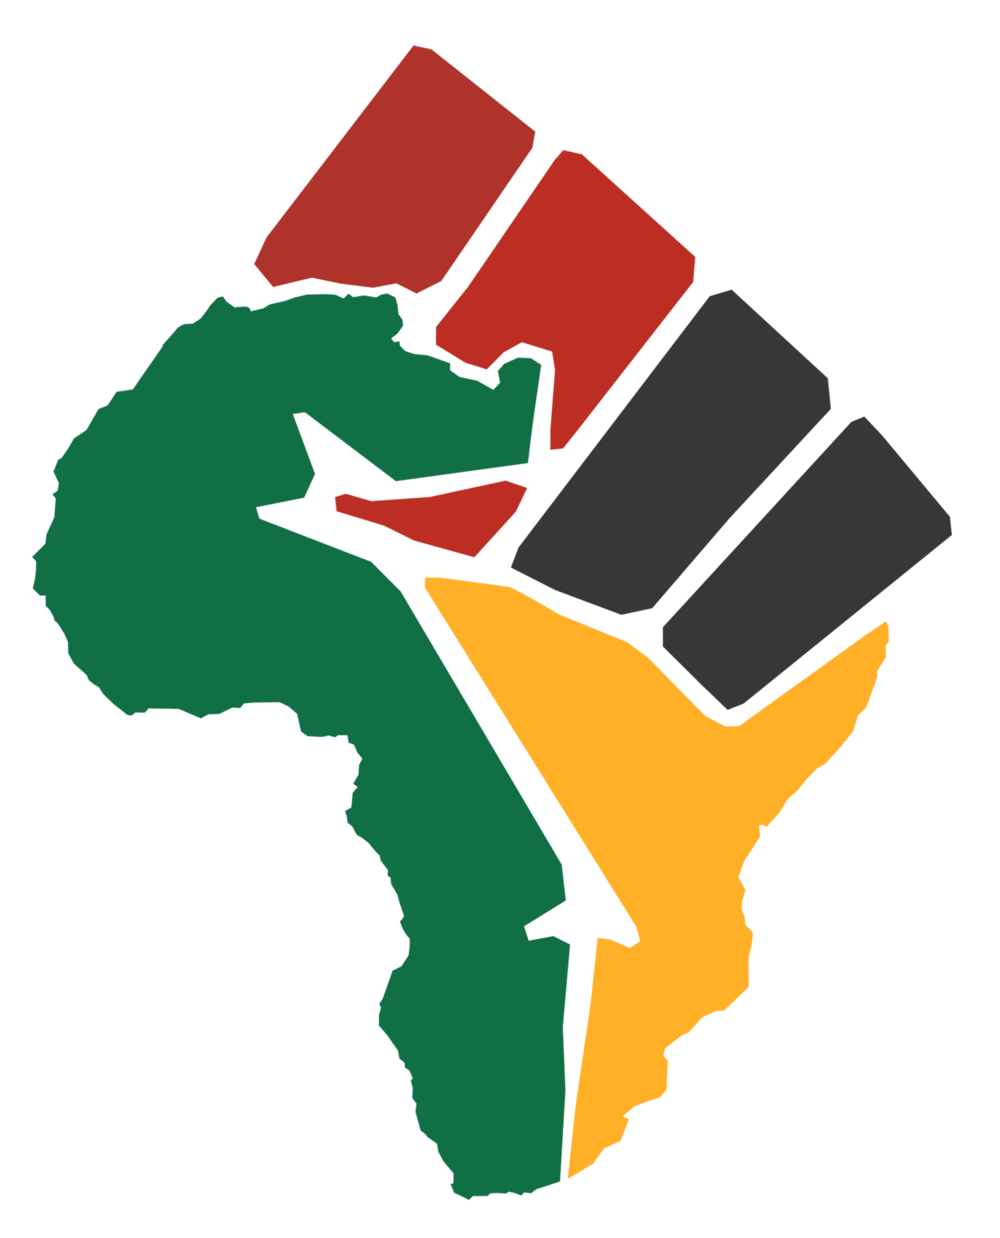 kisspng-black-power-raised-fist-black-panther-party-africa-africa-5acf00ec99a9e4.7974526715235156286294.png